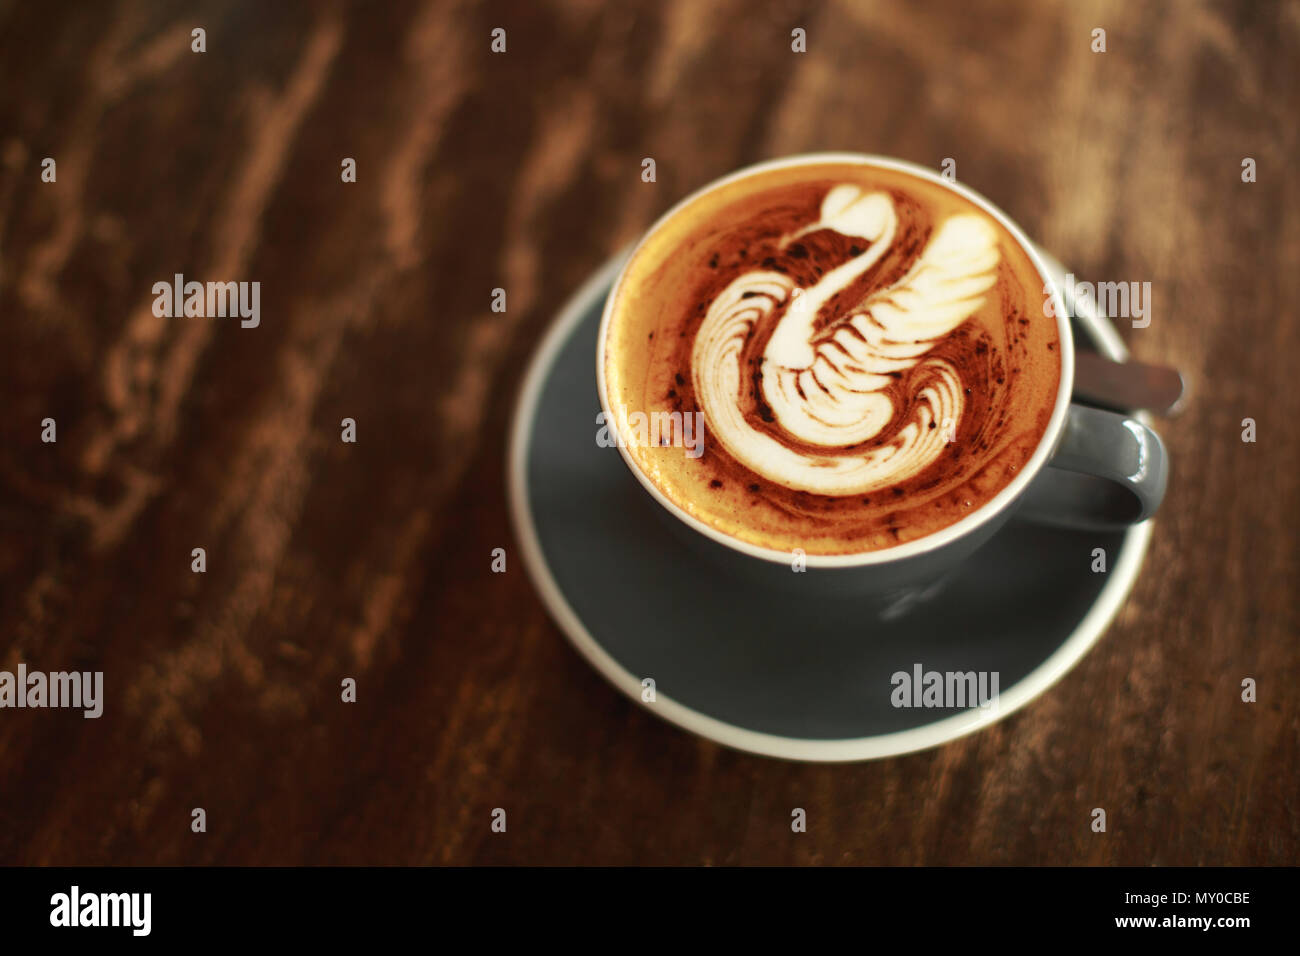 Cup of cappuccino with swan latte art - Stock Image